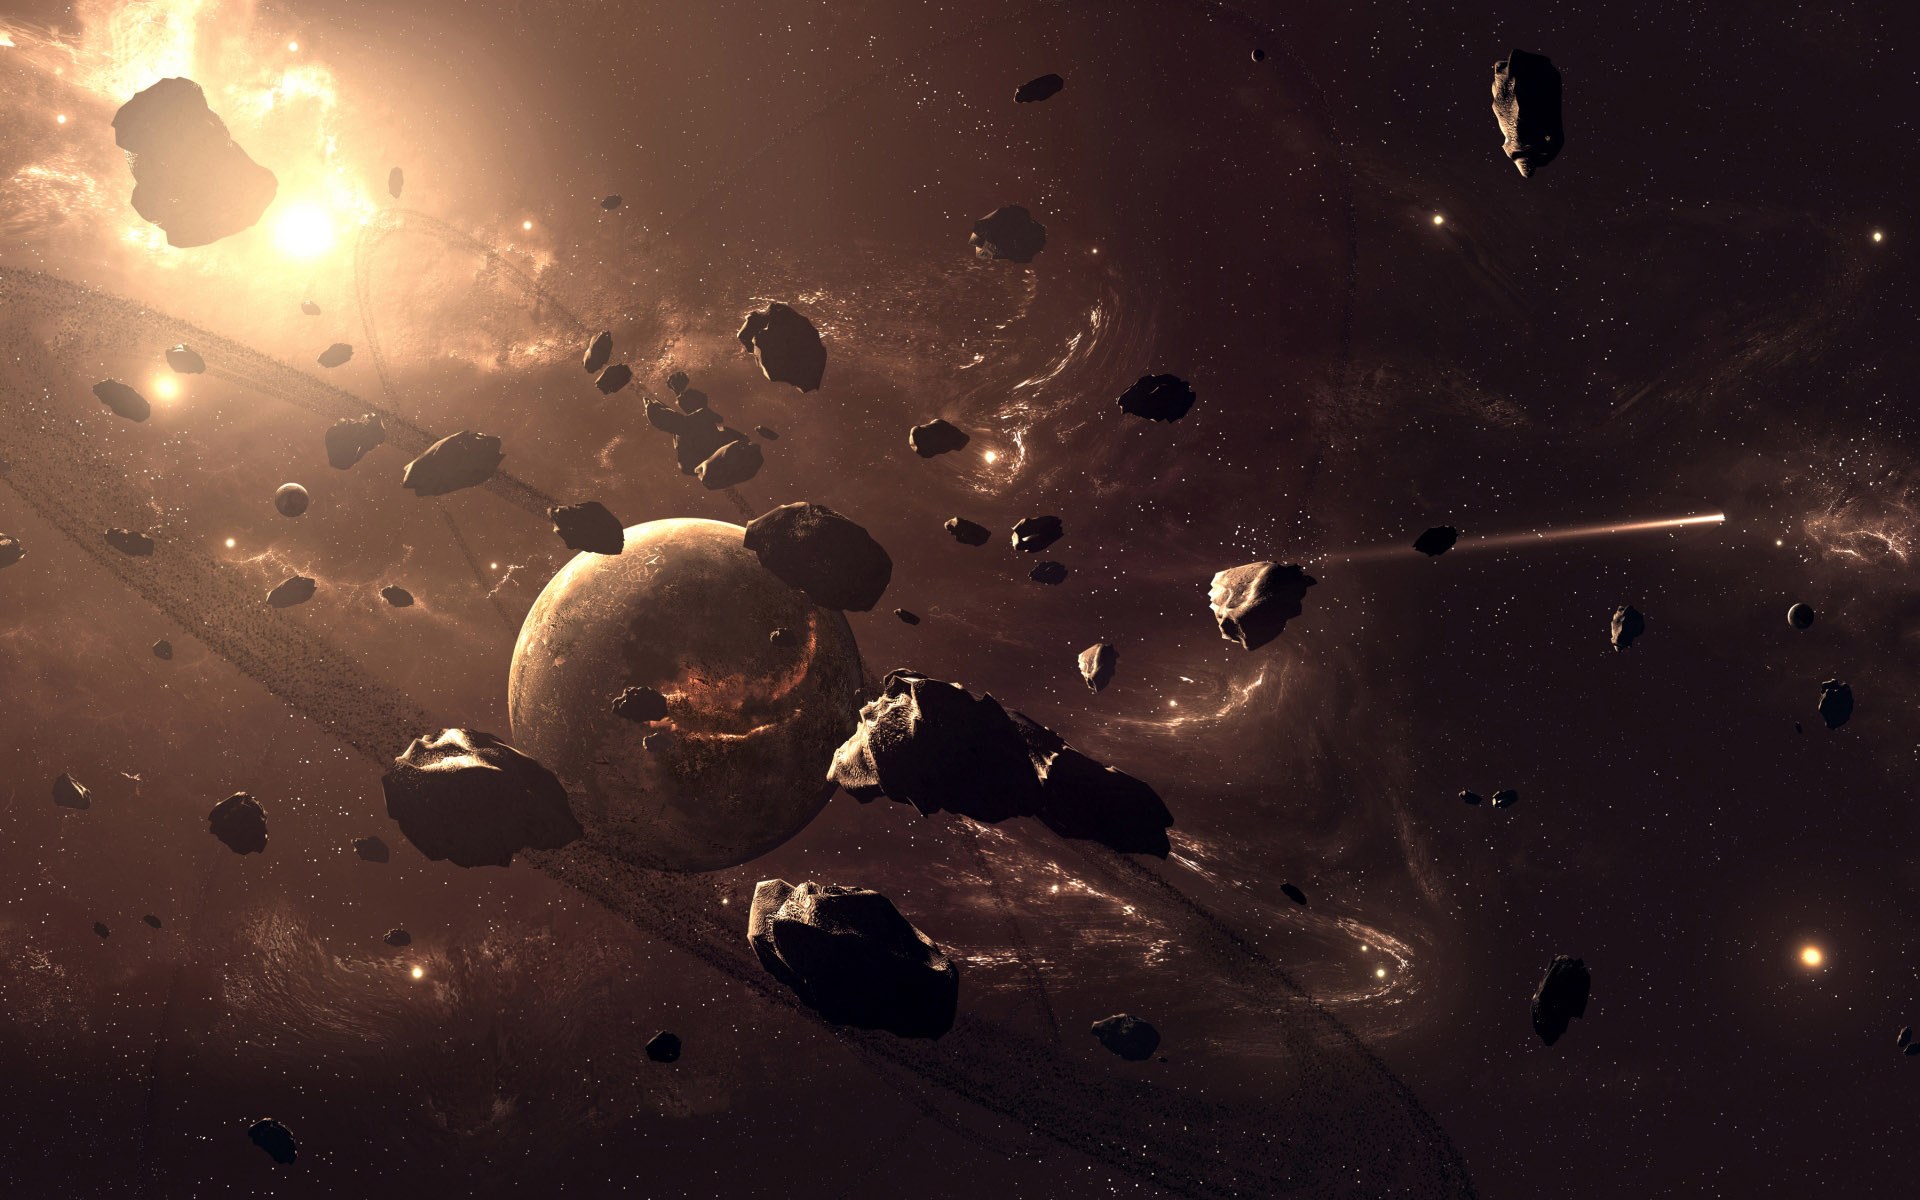 Space_Asteroids_010517_